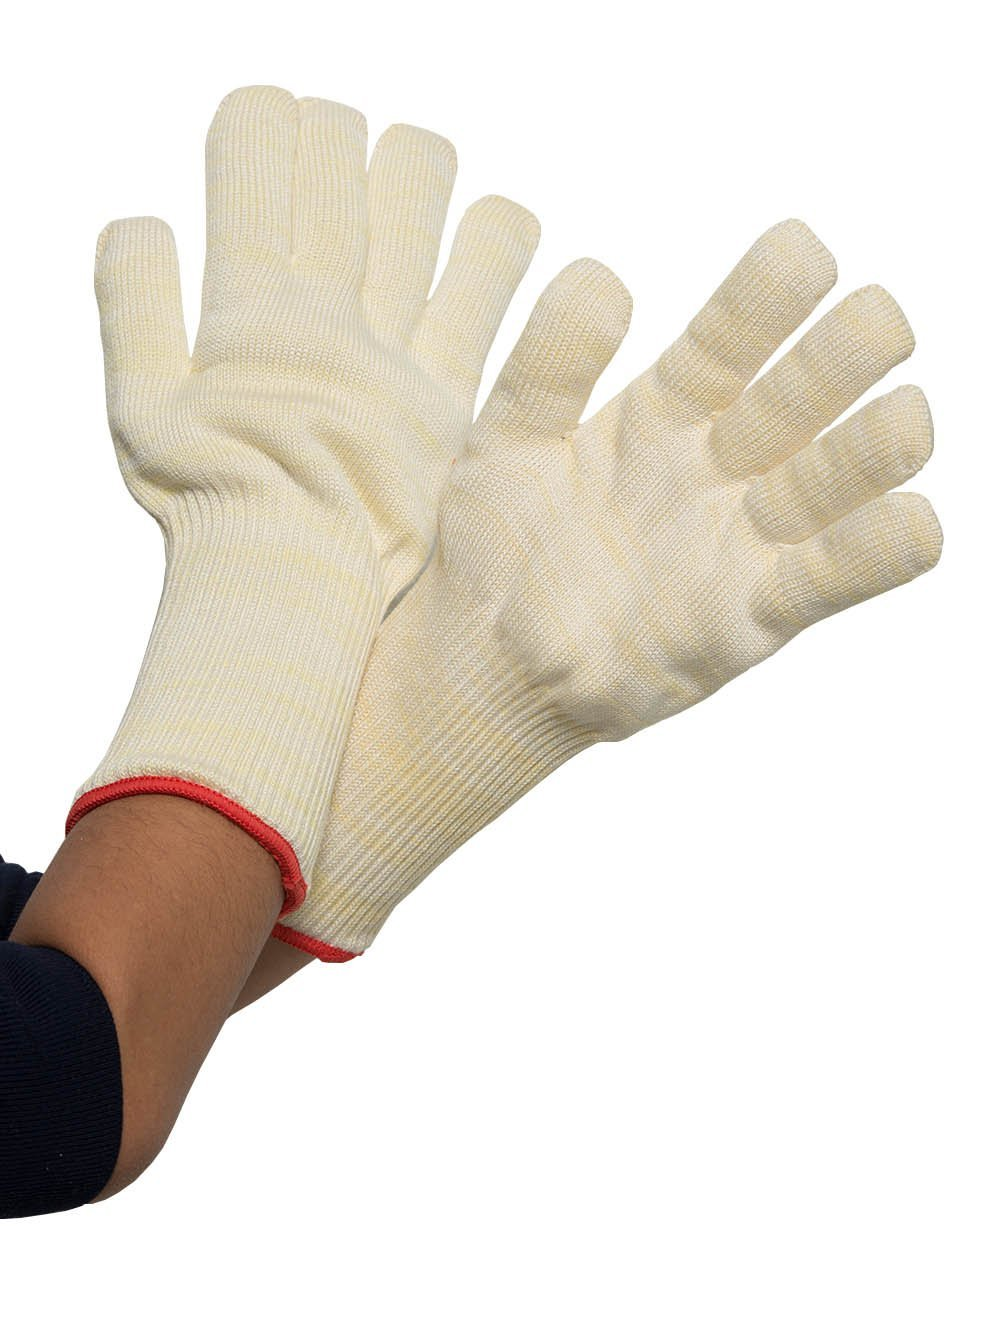 Joyutoy Professional Kevlar Nomex Heat & Cut Resistant Knitted Gloves For Kitchen Protects UP To 250 Degree Oven Mitt Warm gloves